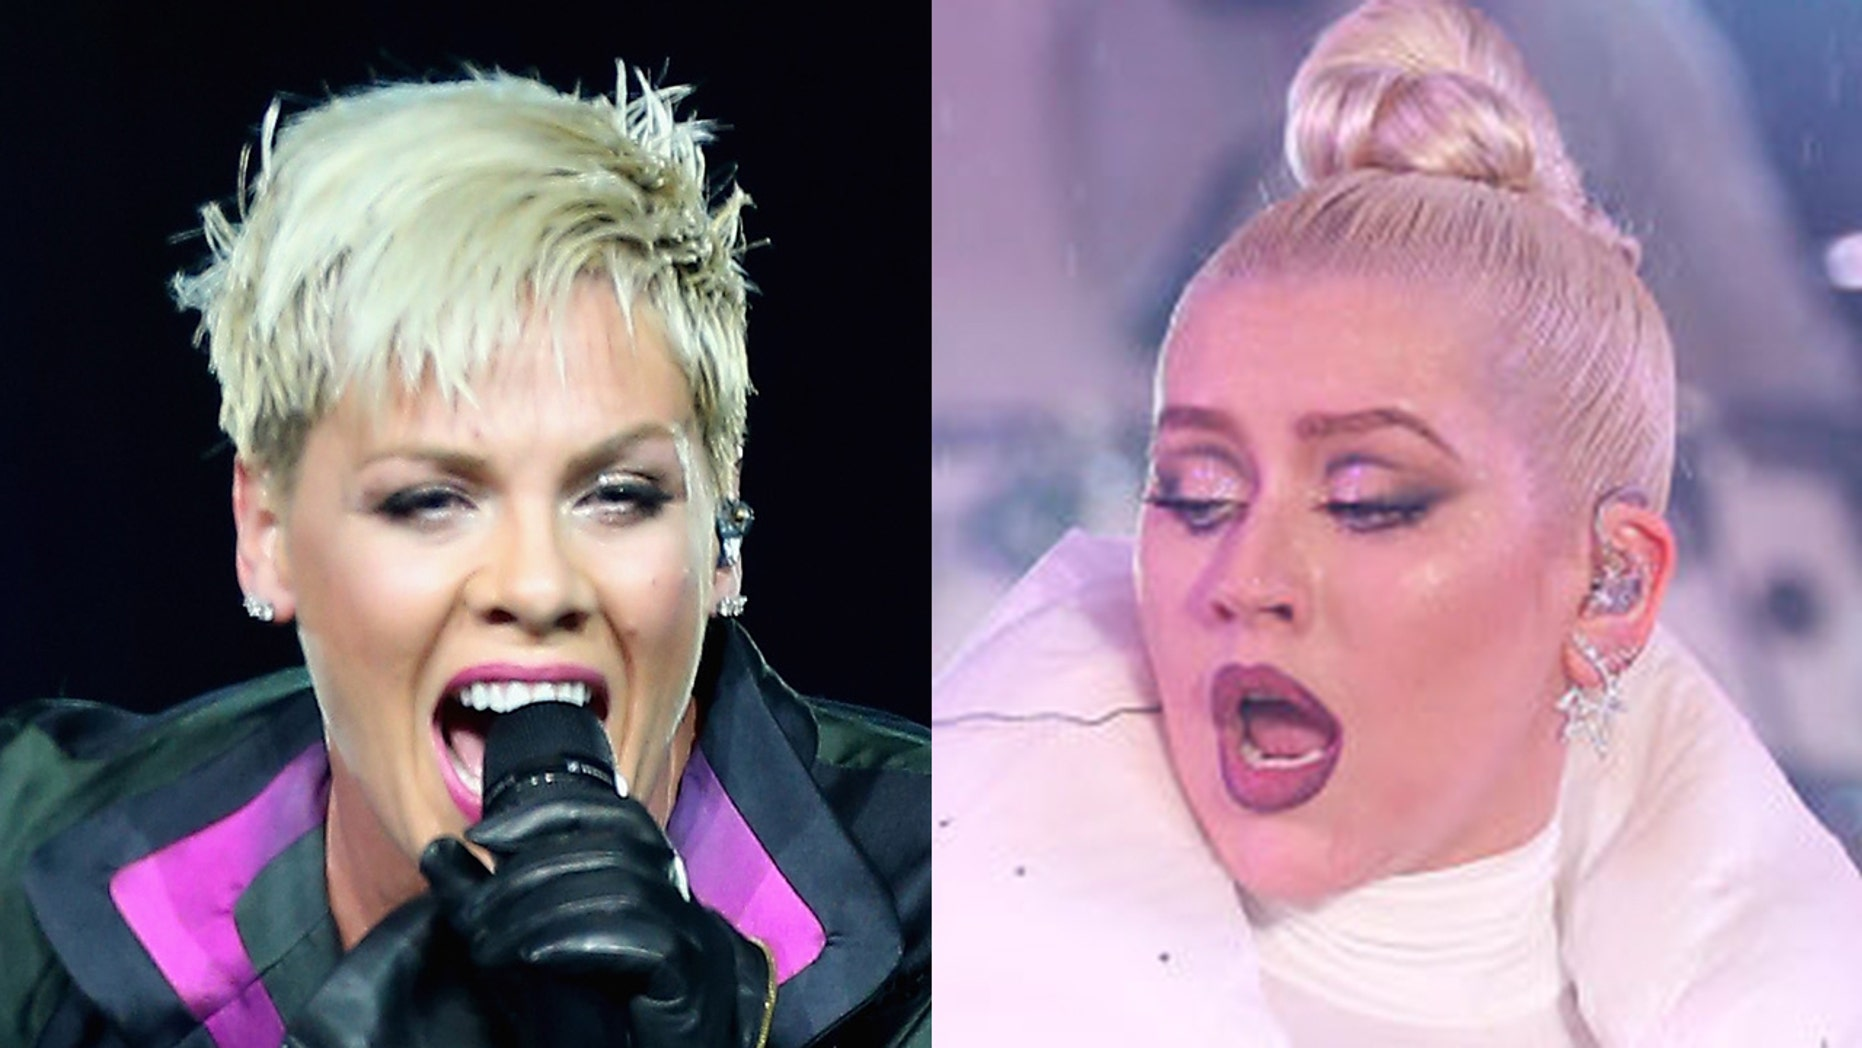 'SHE COULD BEAT MY A--': Christina Aguilera denies throwing punch at Pink